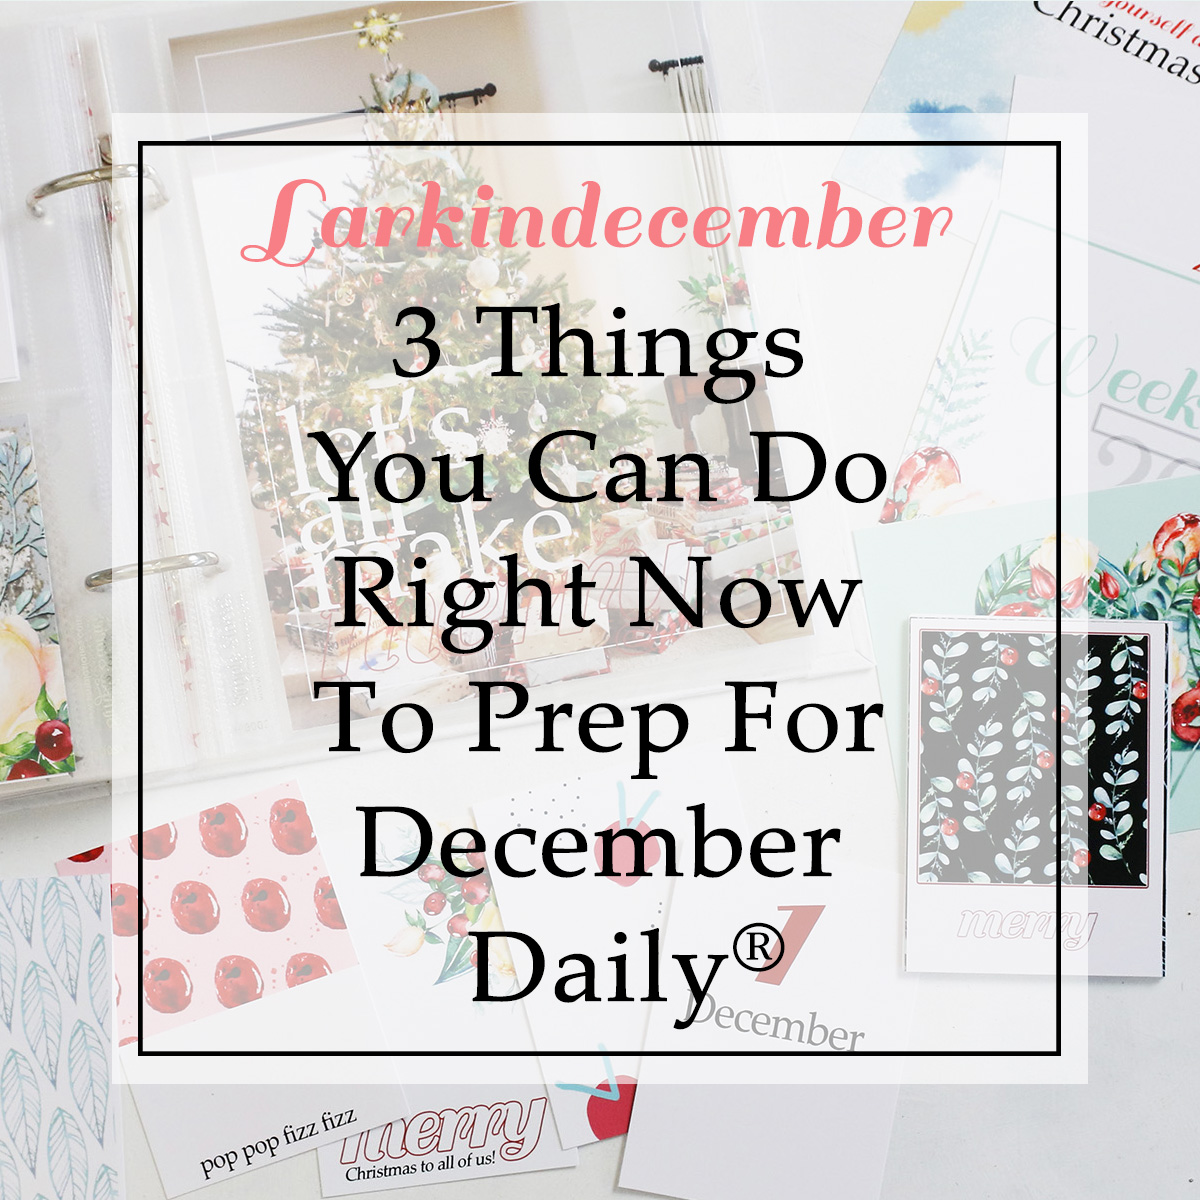 Larkindecember 3 Things To Prep For December Daily